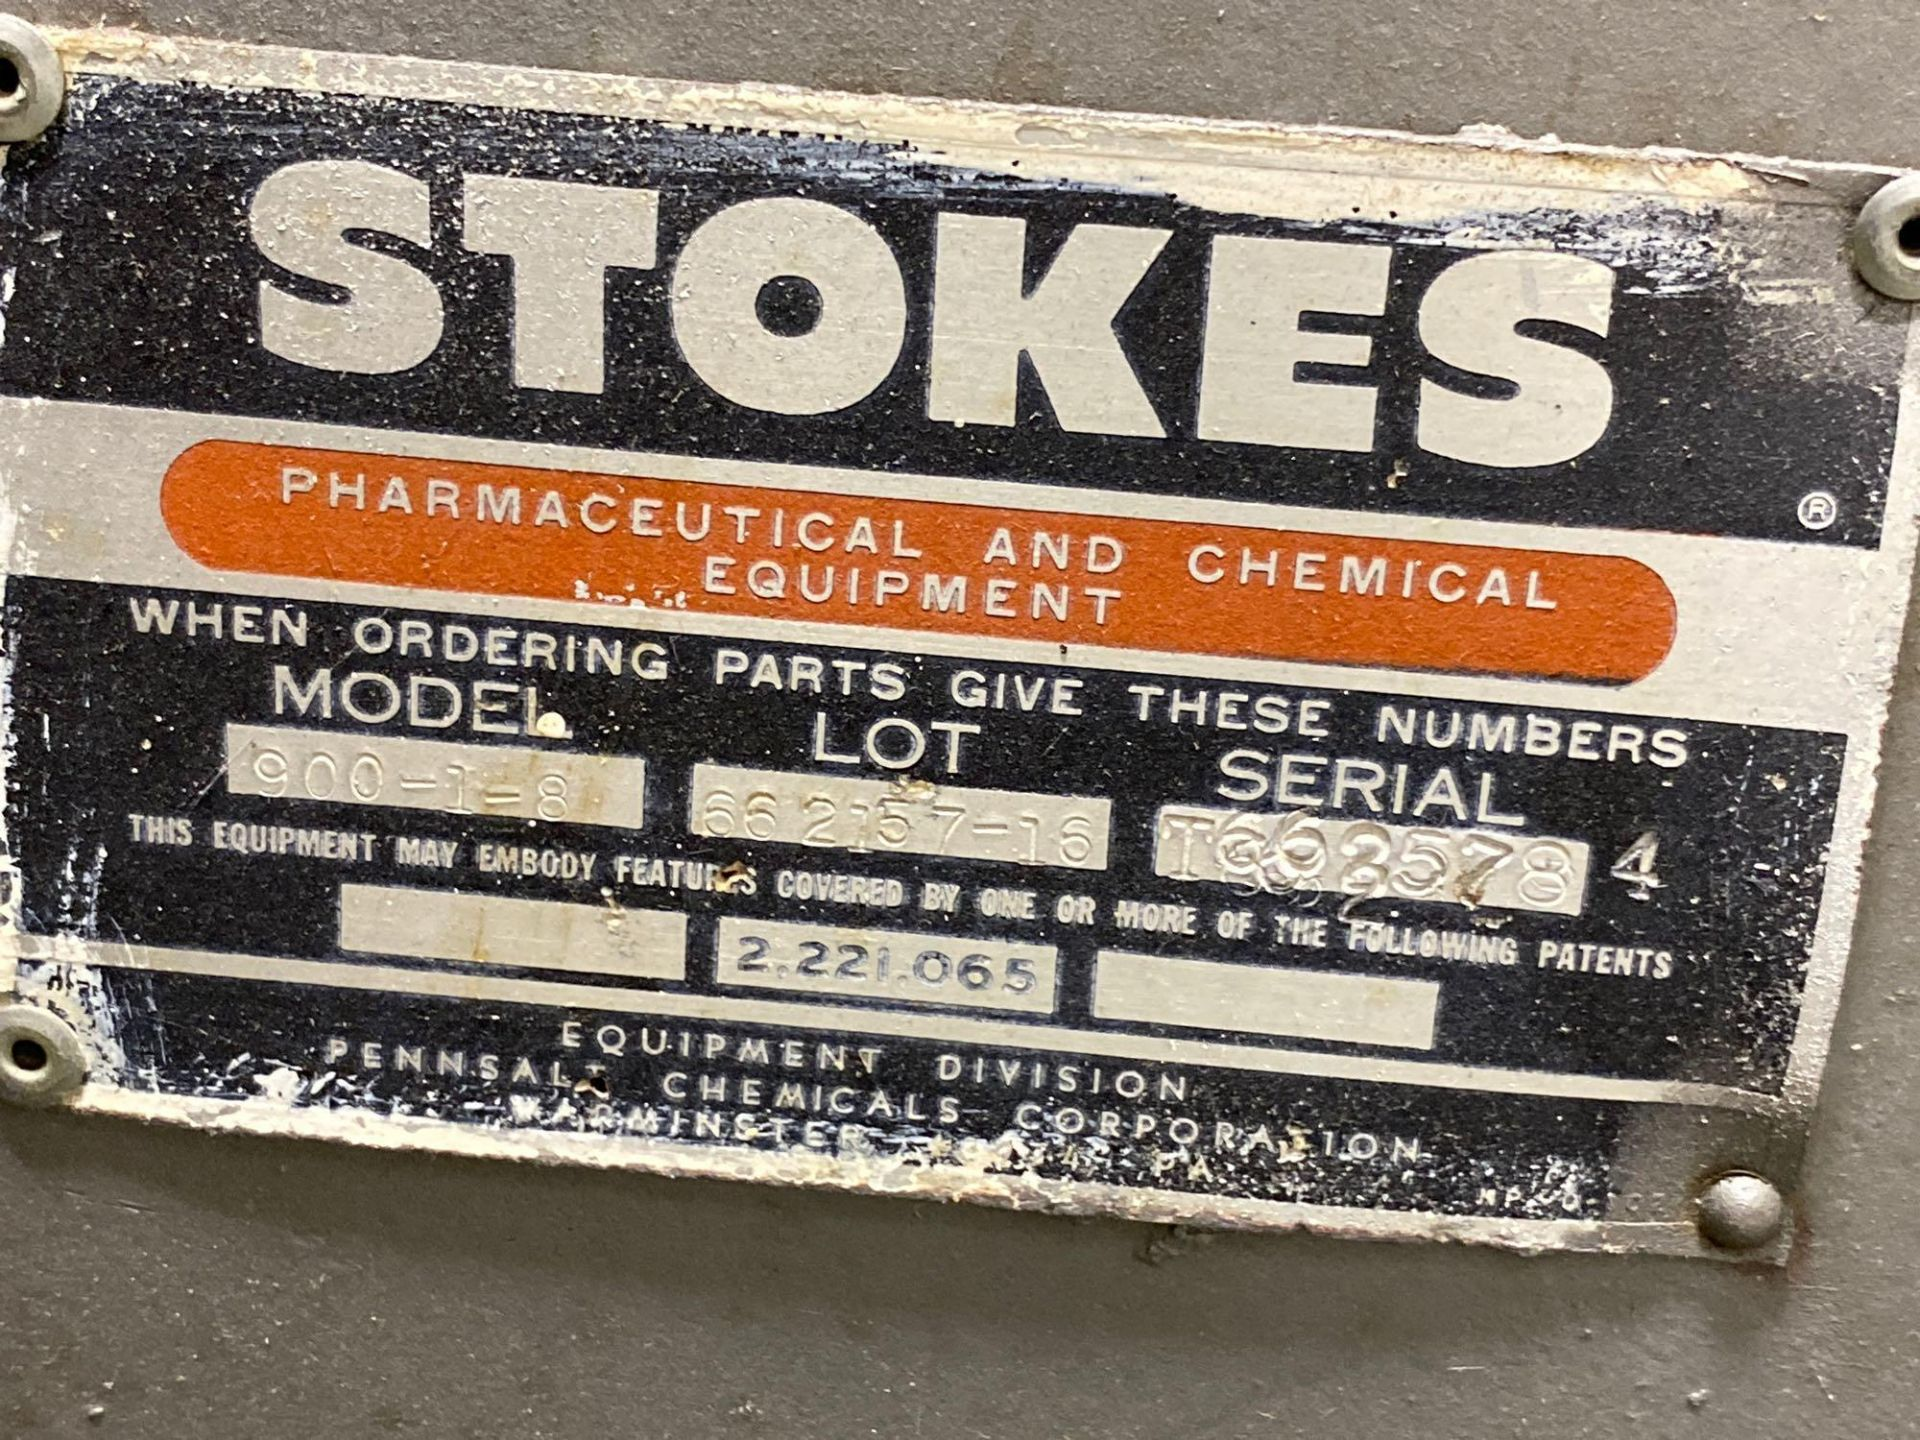 """Stokes 42""""d Coating Pan 900-1-8 - Image 5 of 7"""